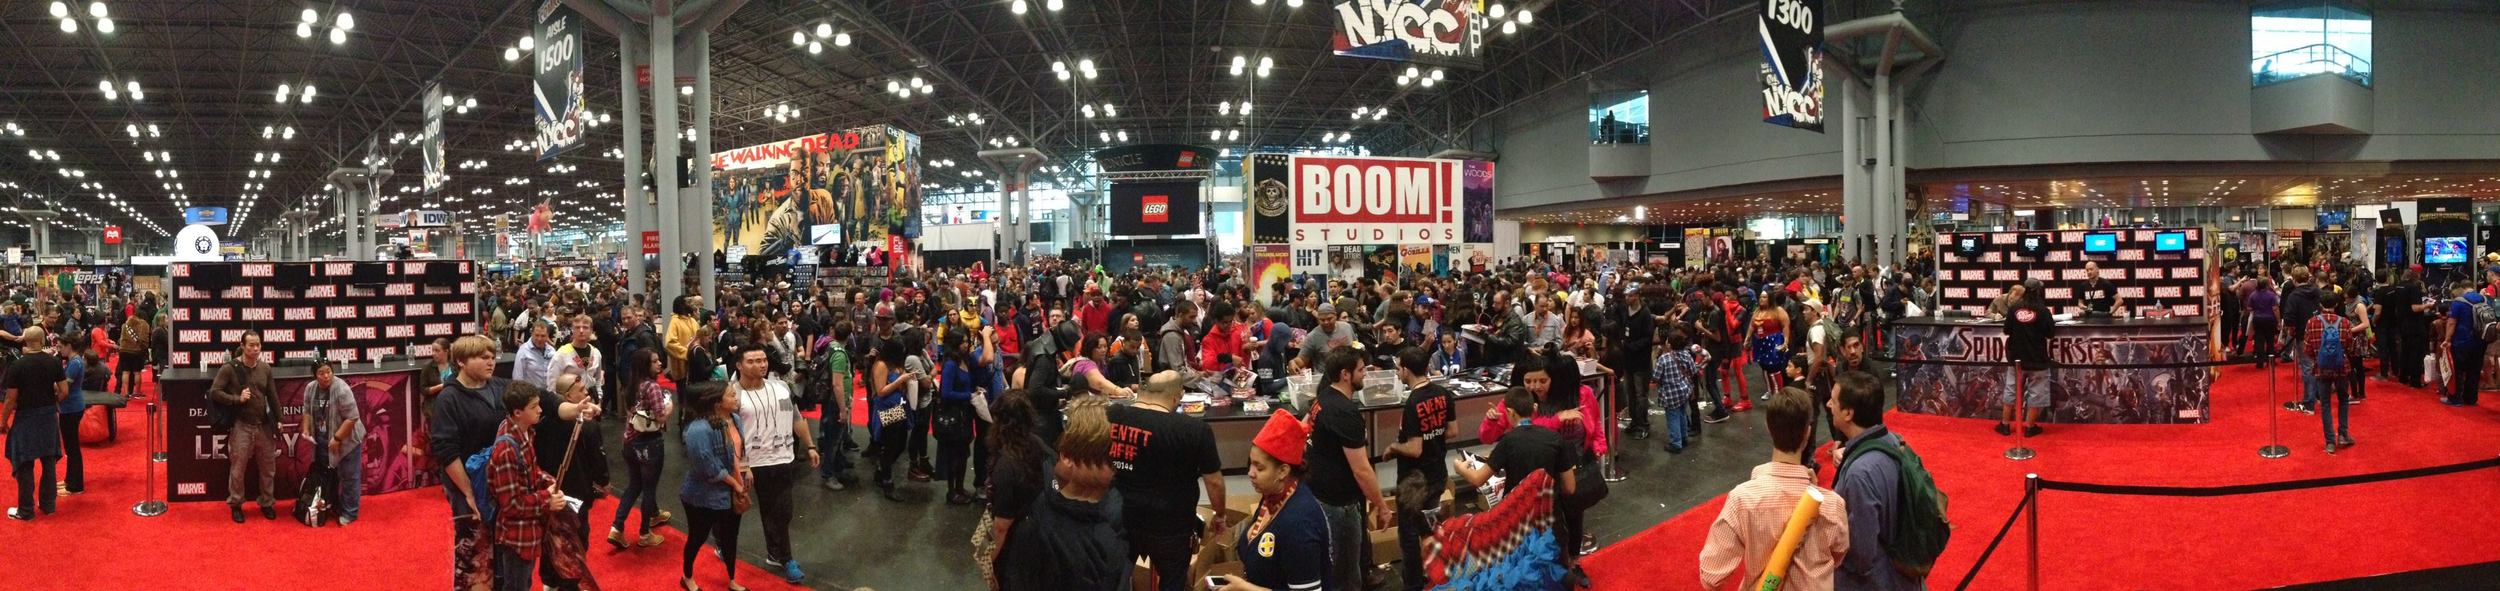 Marvel booth - just about to let the hordes in. I'm tiny and on the right, ready to sign.